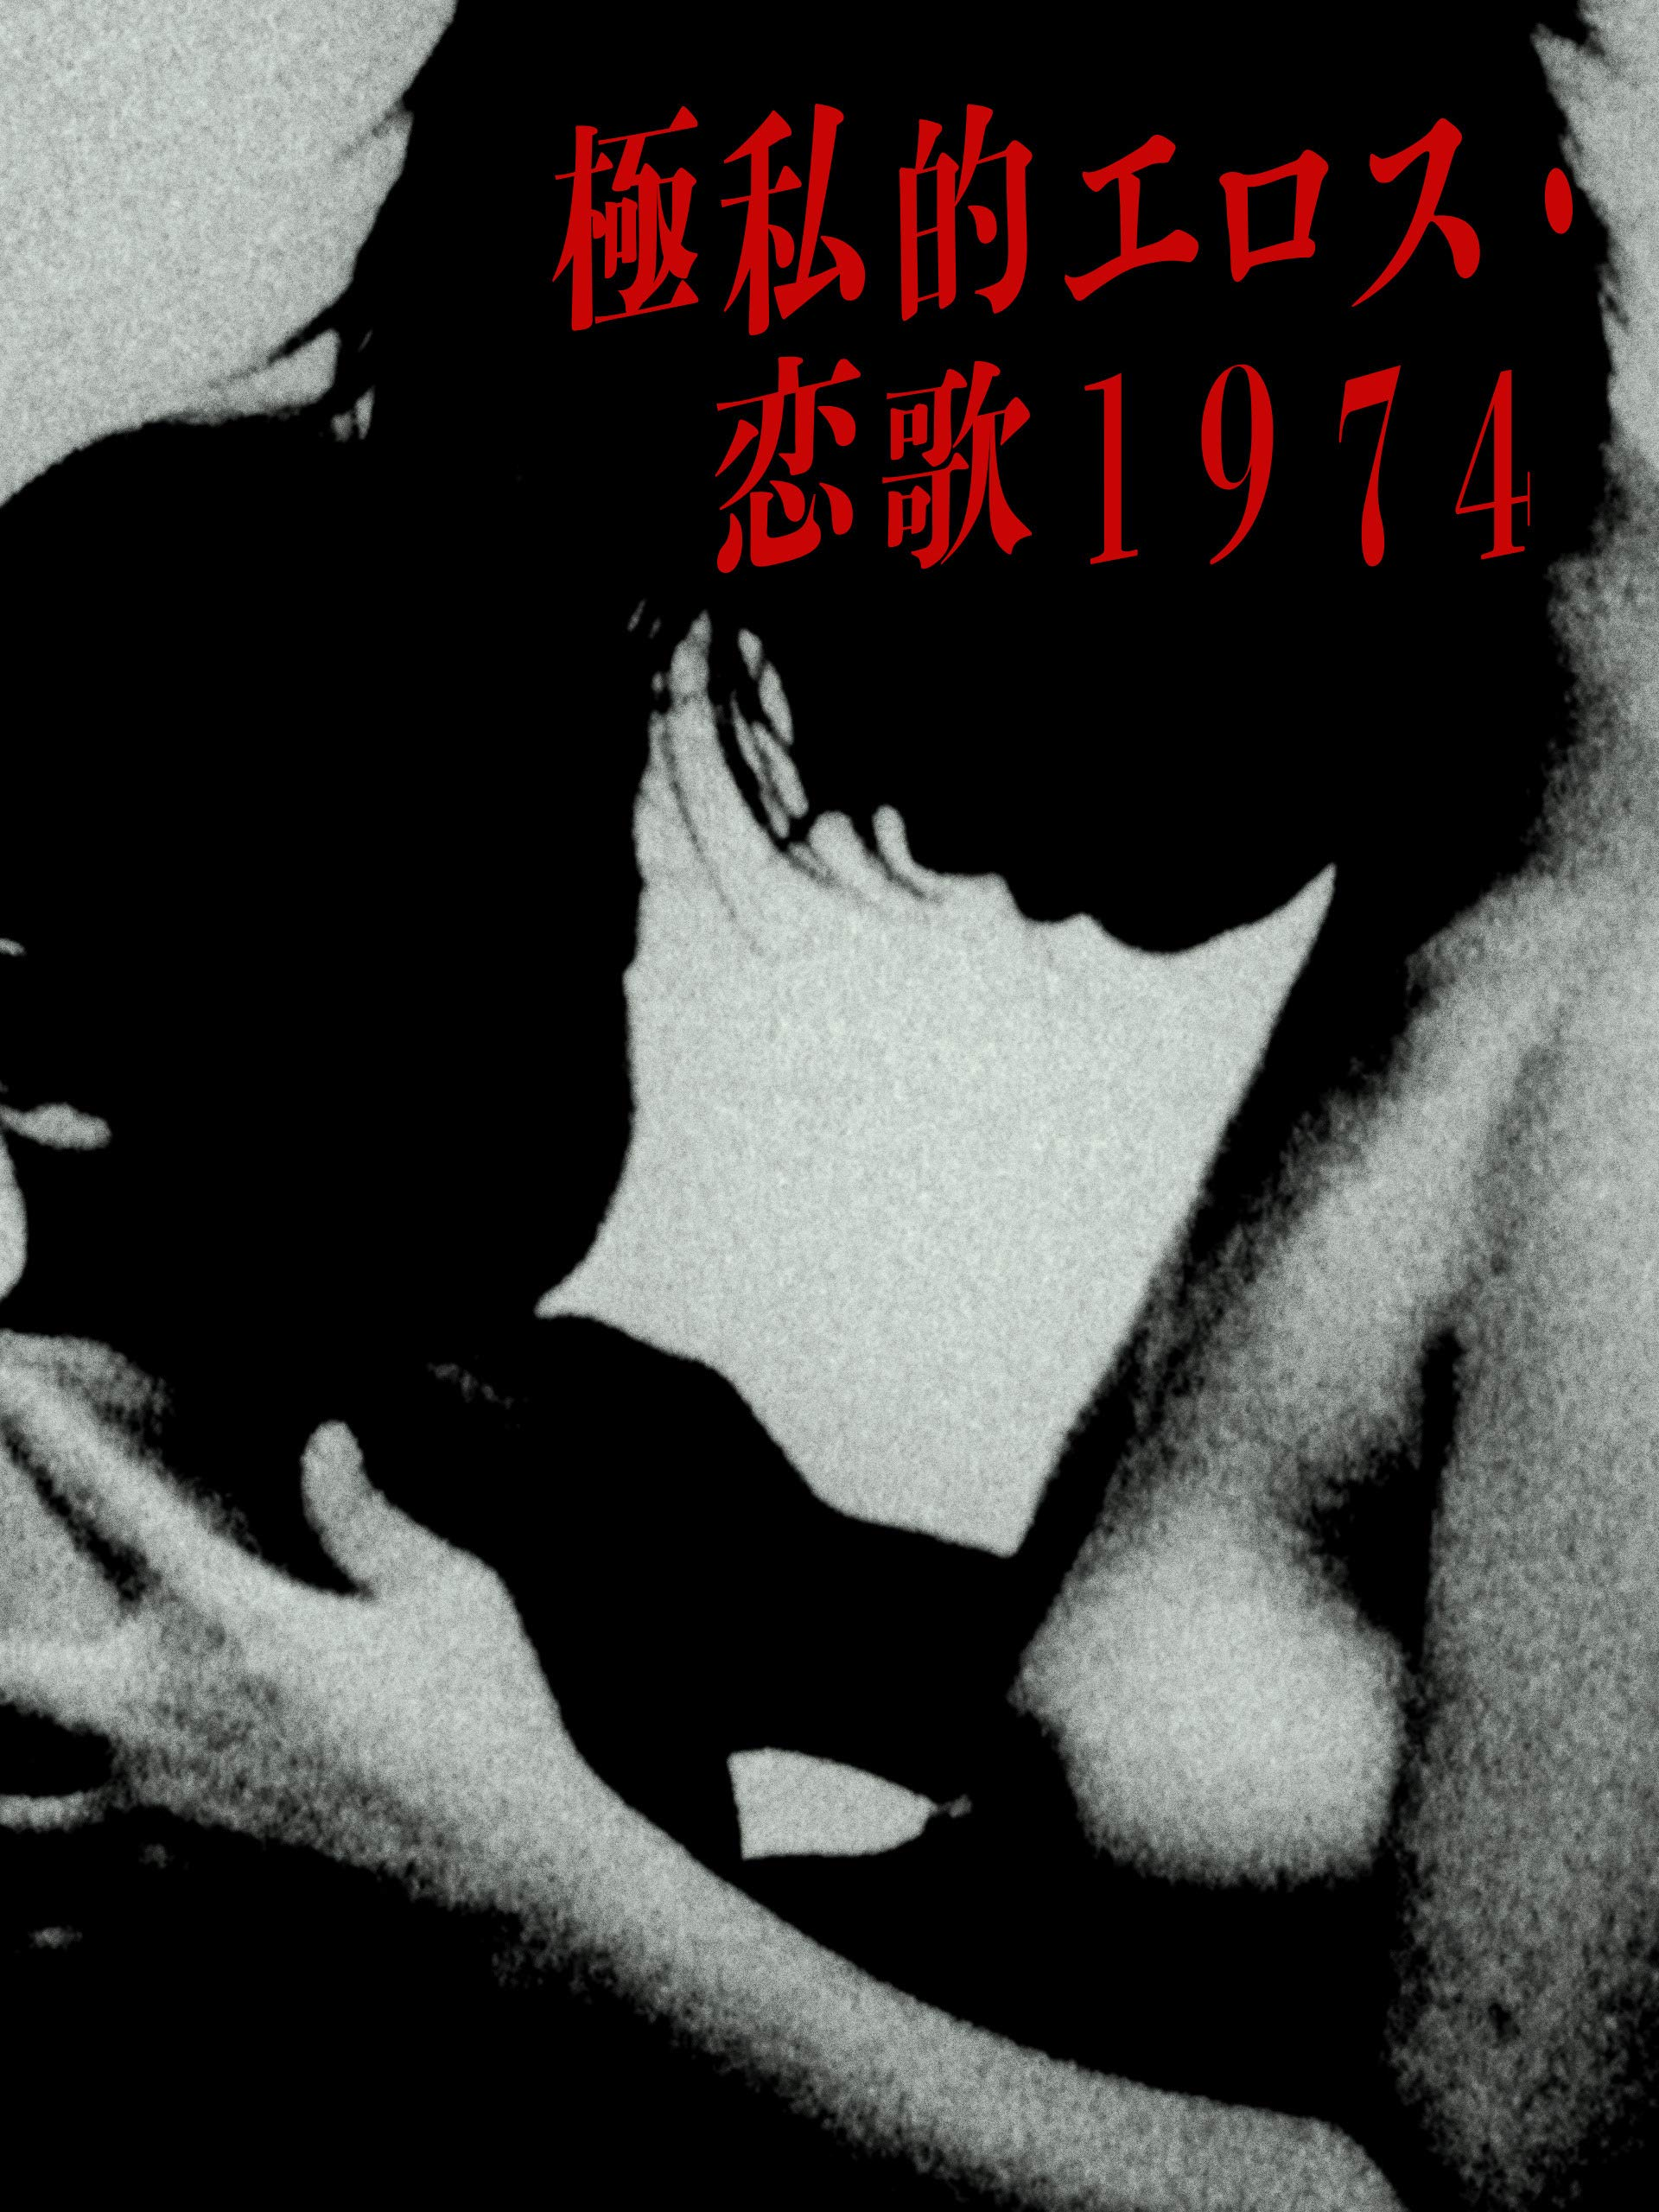 Featured image for Extreme Private Eros: Love Song 1974  極私的エロス 恋歌1974 Director: Kazuo Hara  Producer: Sachiko Kobayashi (1974)